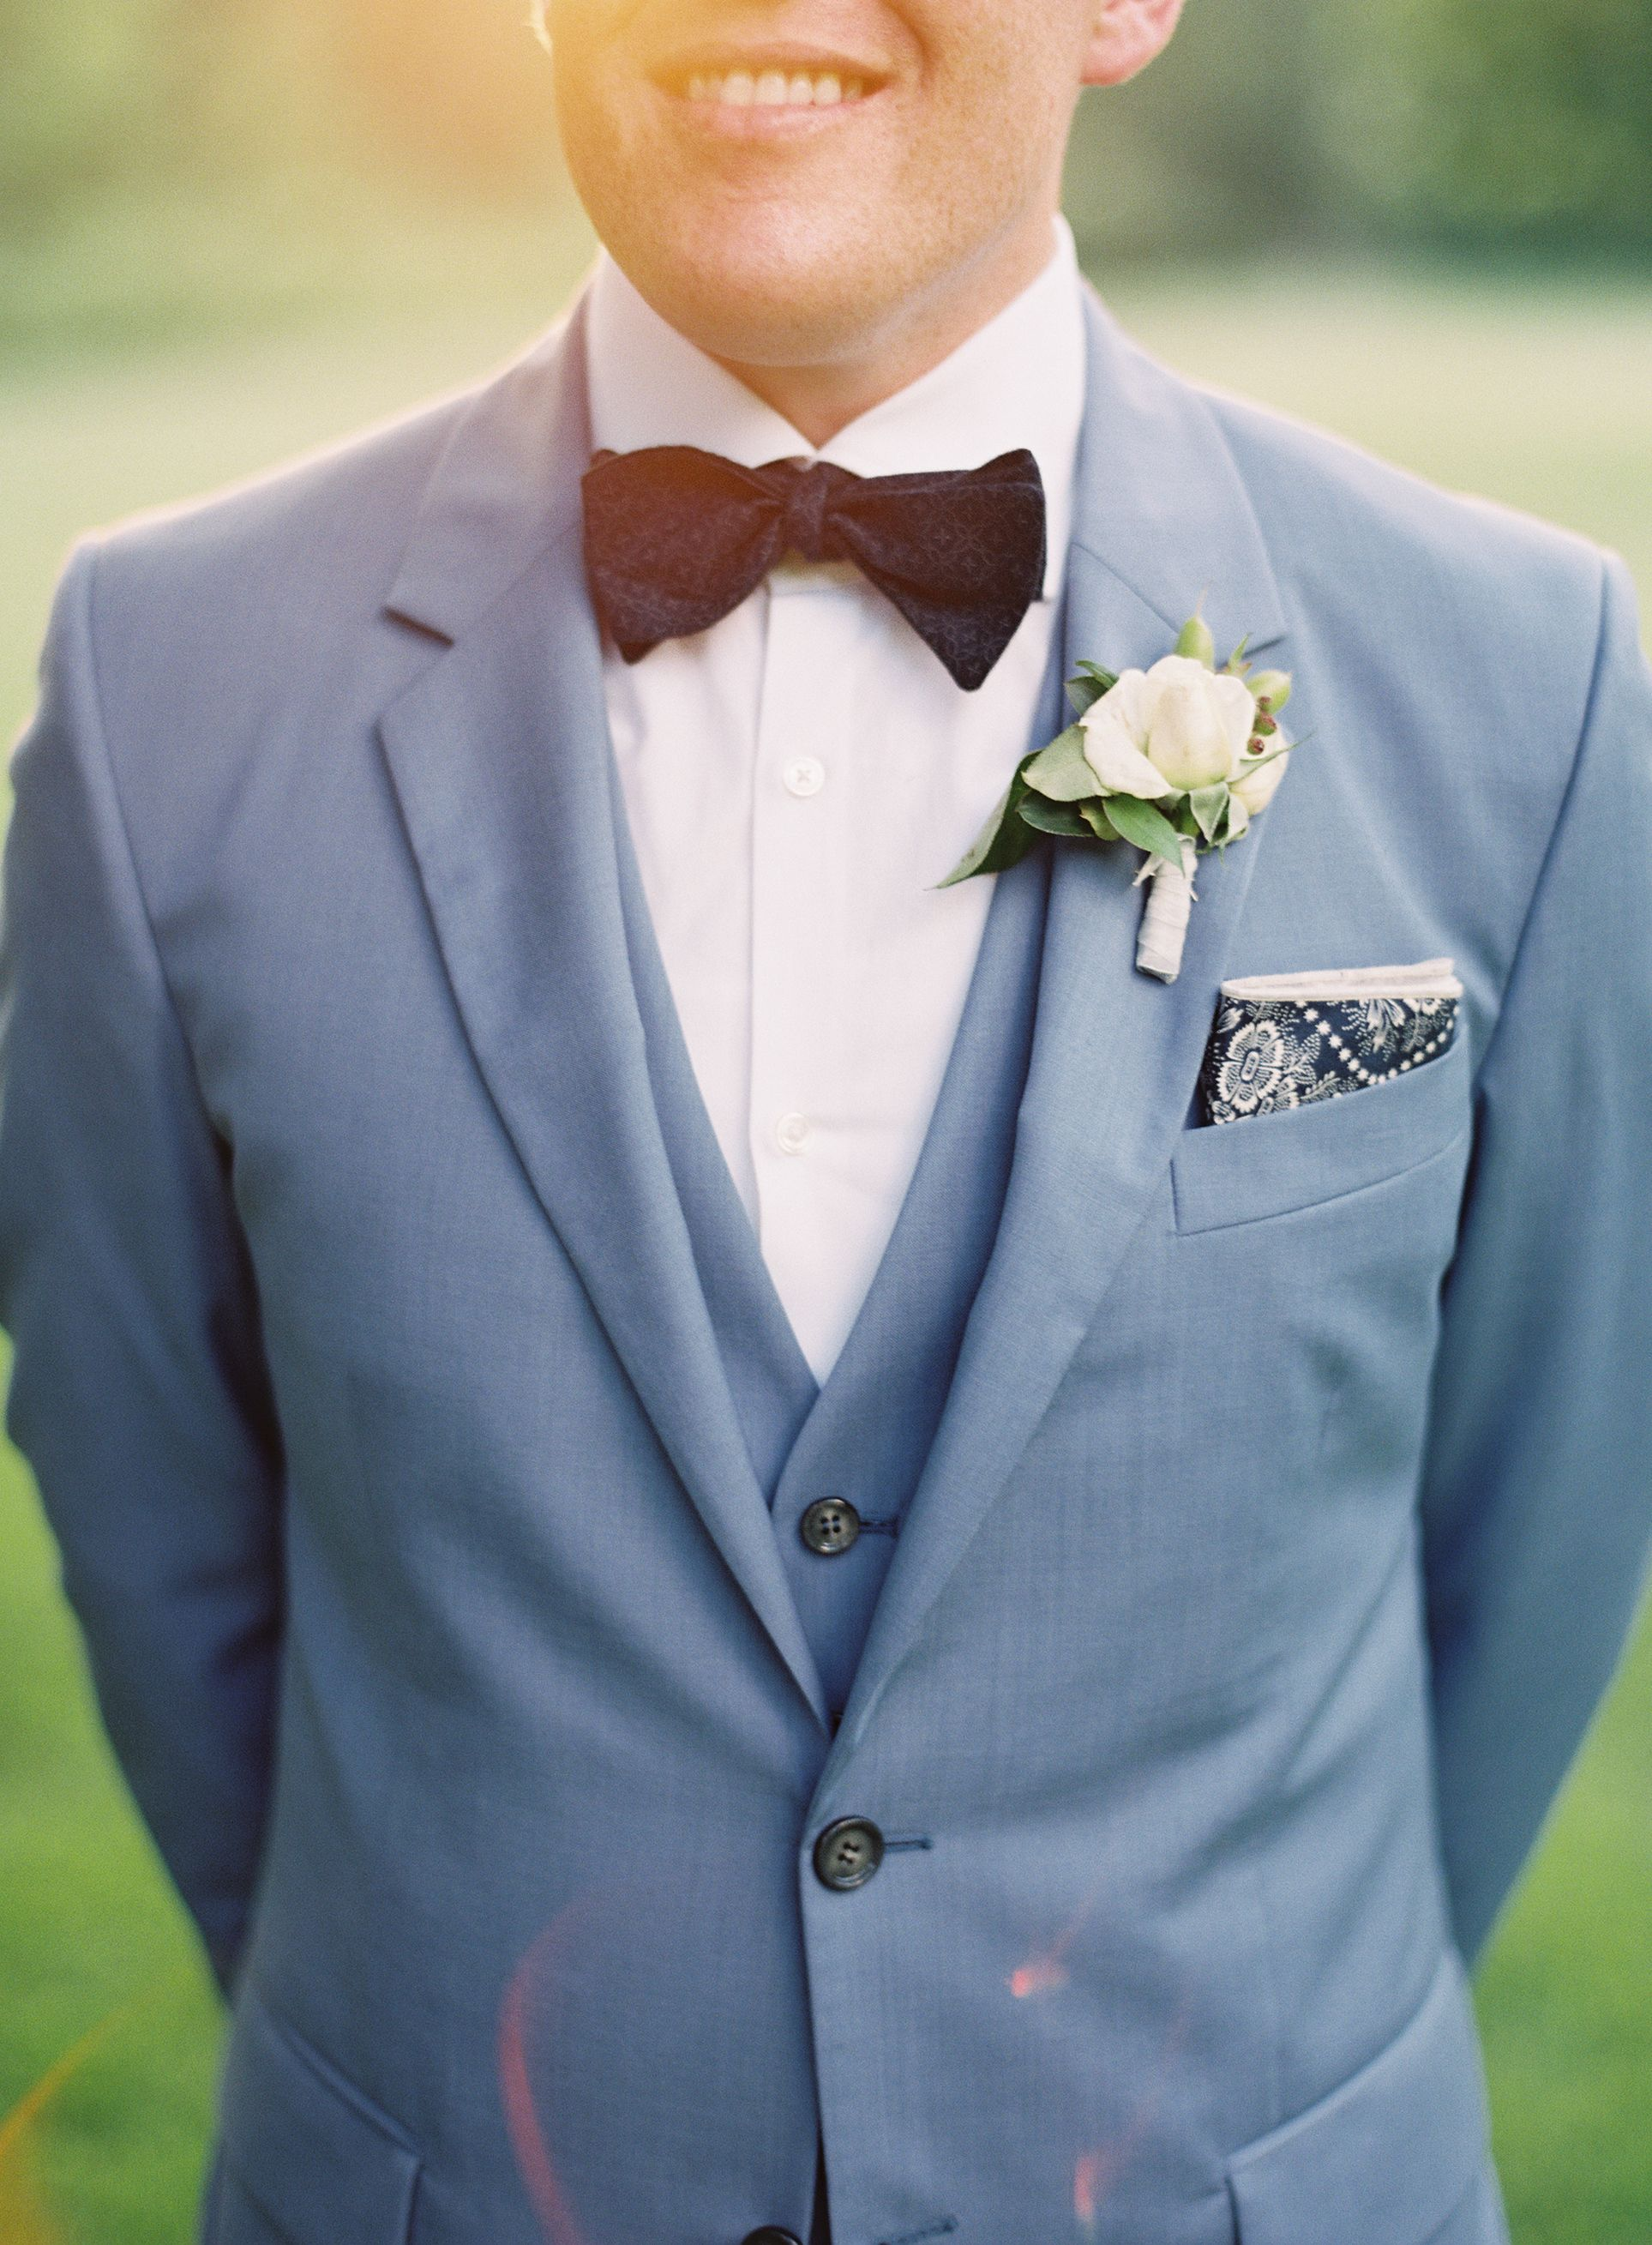 Groom in Blue Suit | Pinterest | Grooms, Wedding and Wedding suits